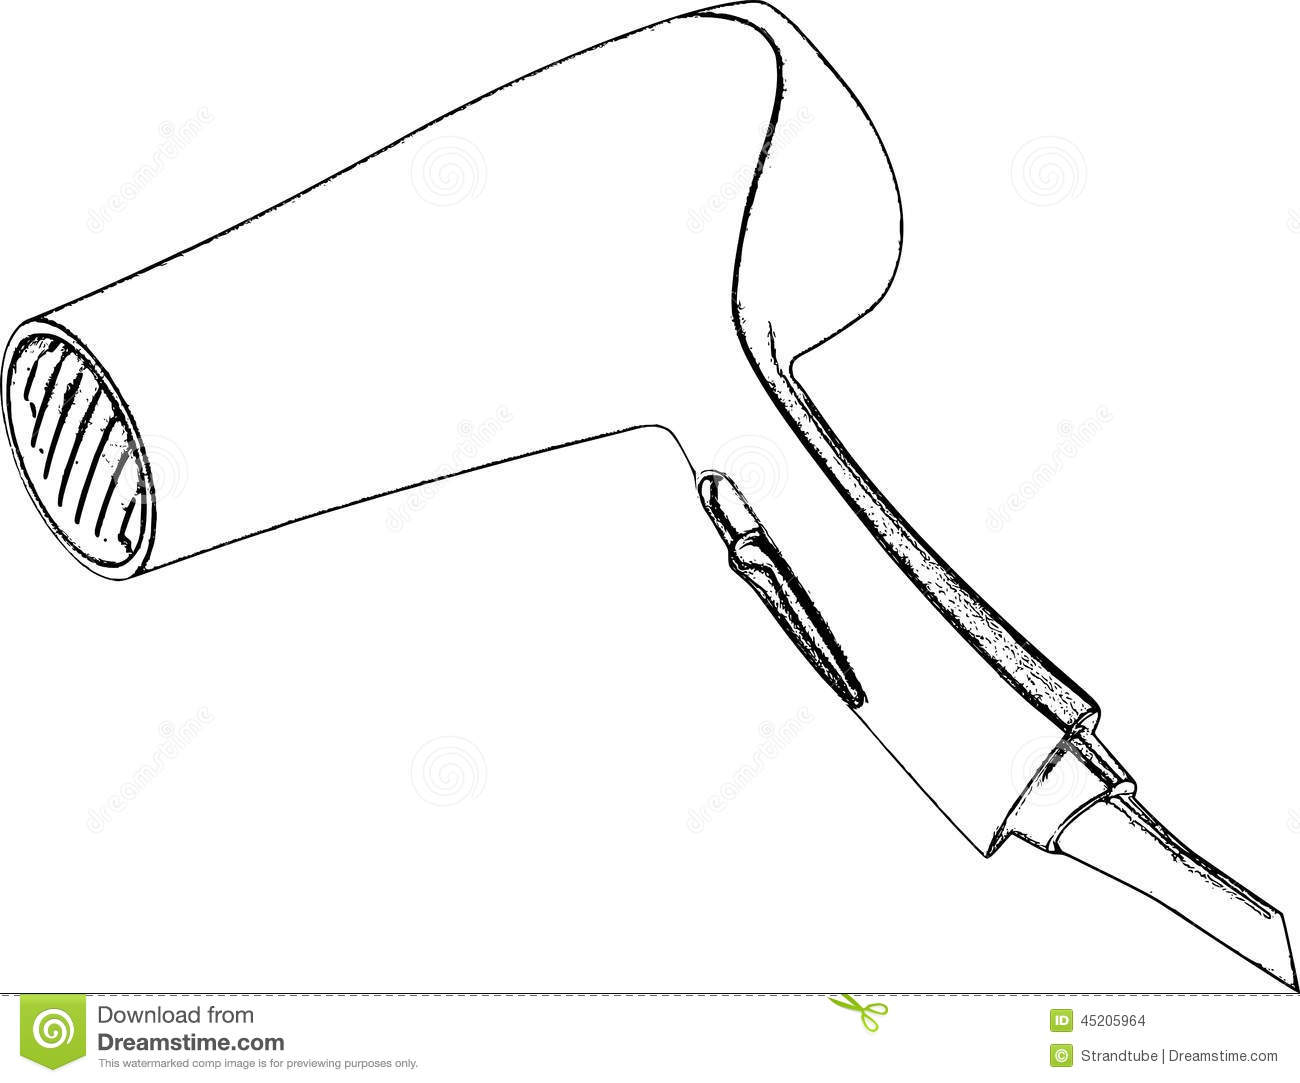 Hair Dryer Drawing ~ Stock images hair dryer line pencil sketch image